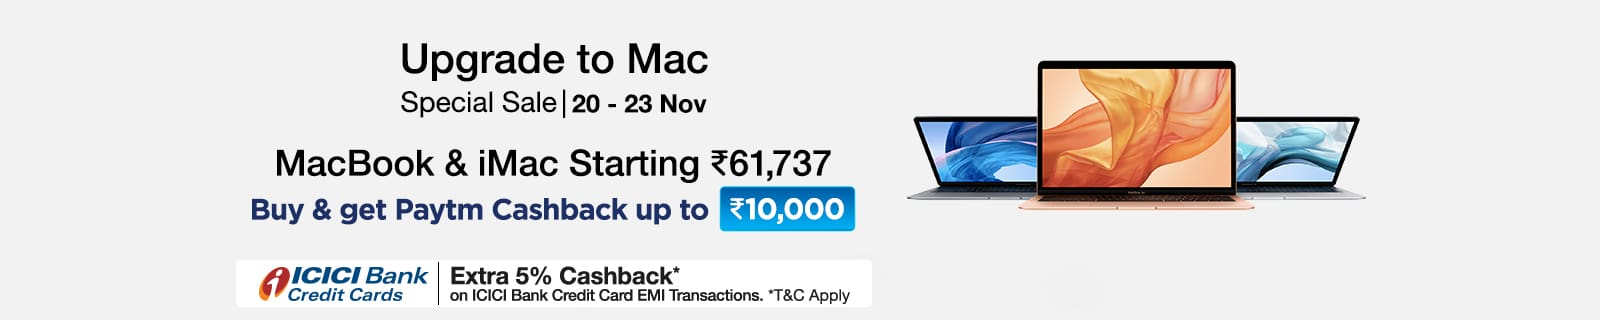 Mac days|20th-23rd Nov